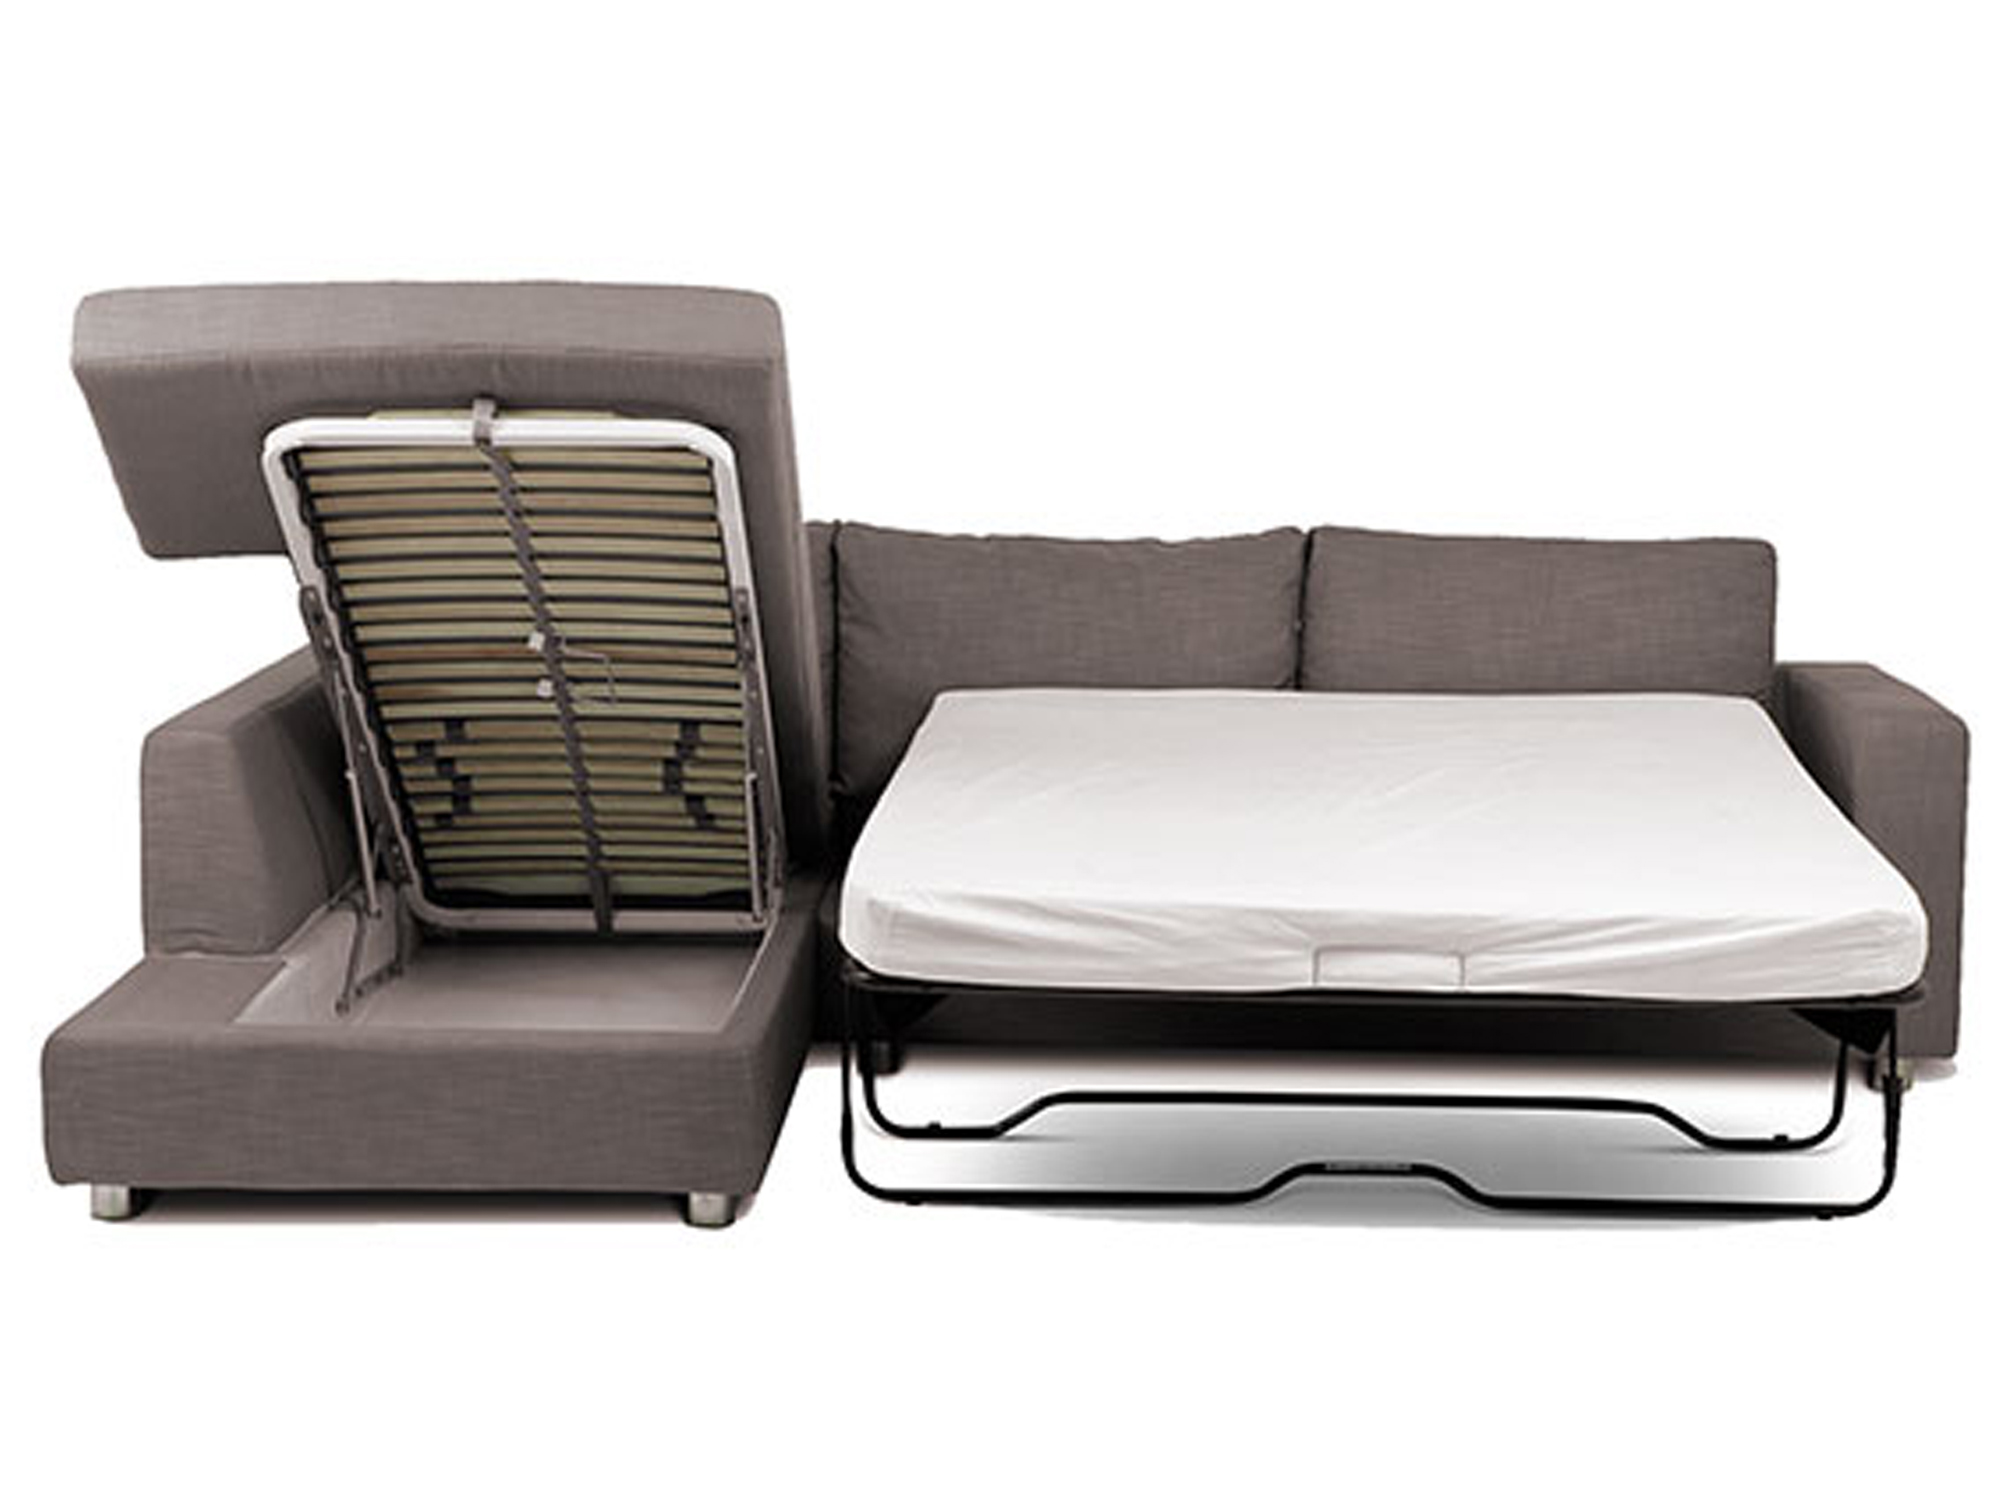 corner sofa bed mondo grey corner storage inner spring mattress sofa bed, storage chaise  open LUCRKII